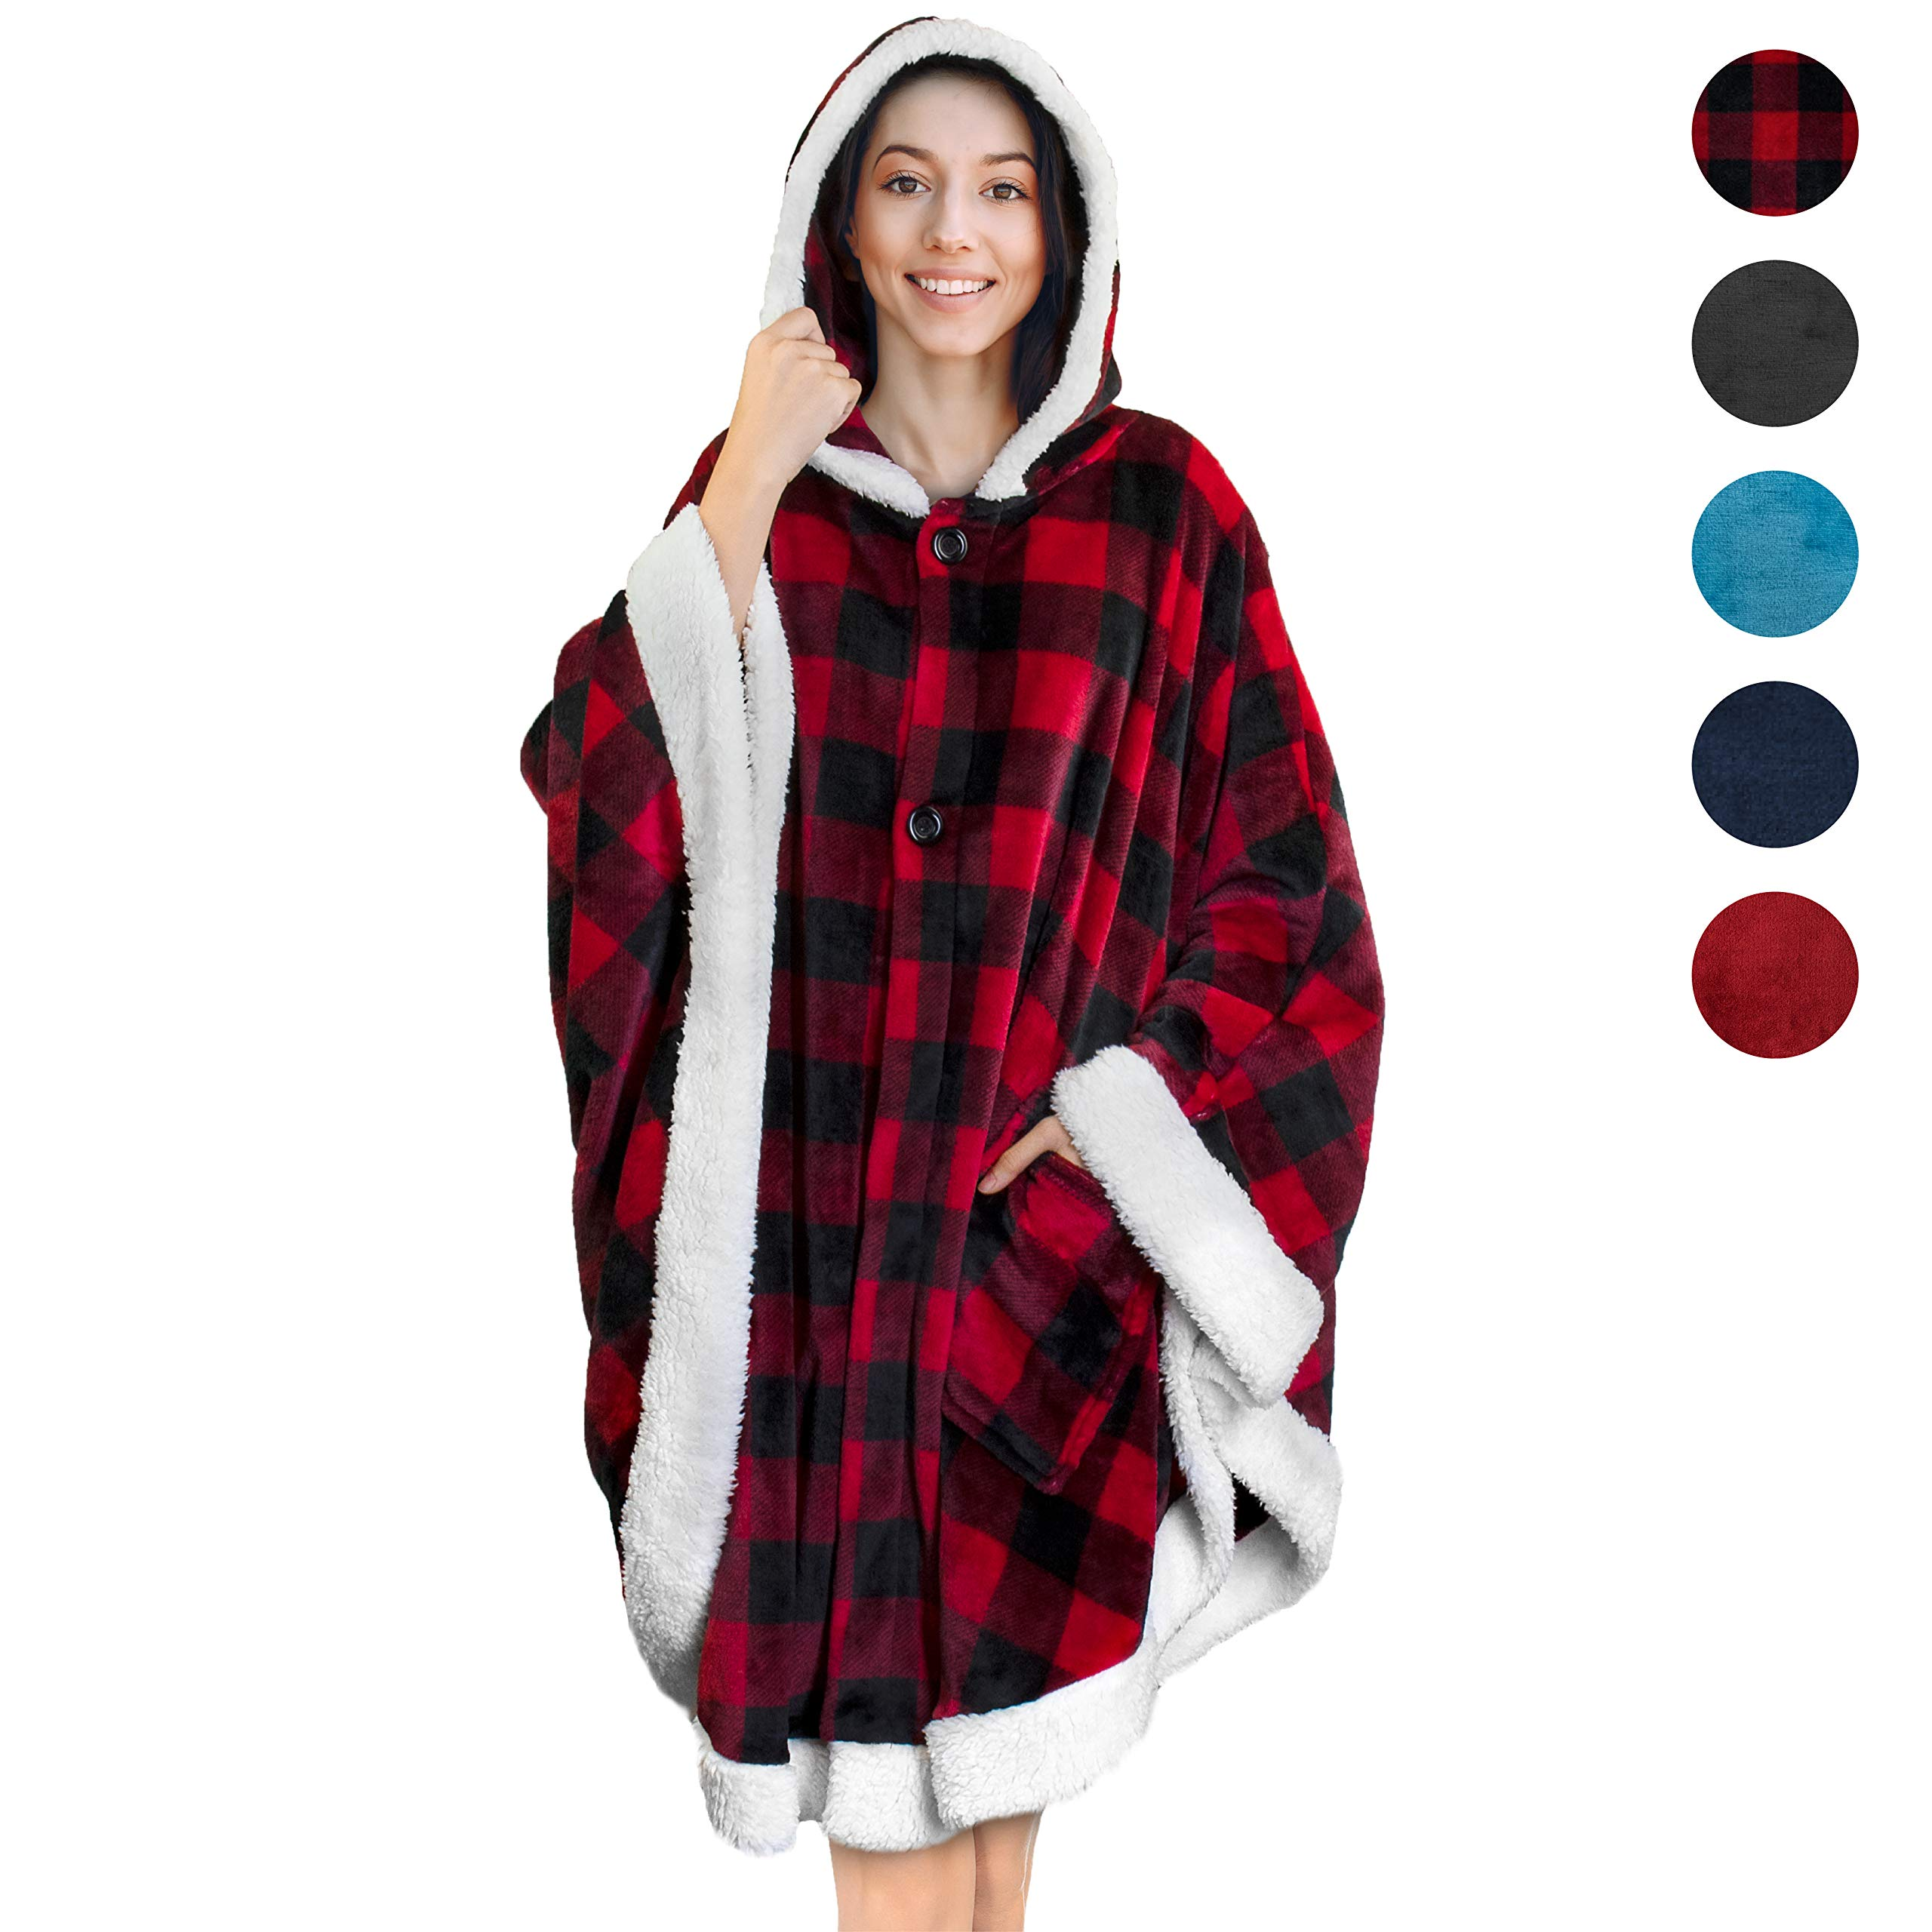 PAVILIA Angel Wrap Hooded Blanket   Throw Poncho Wrap with Soft Sherpa Fleece   Plush, Warm Wearable Blanket with Pockets for Women Gift (Checker Red) by PAVILIA